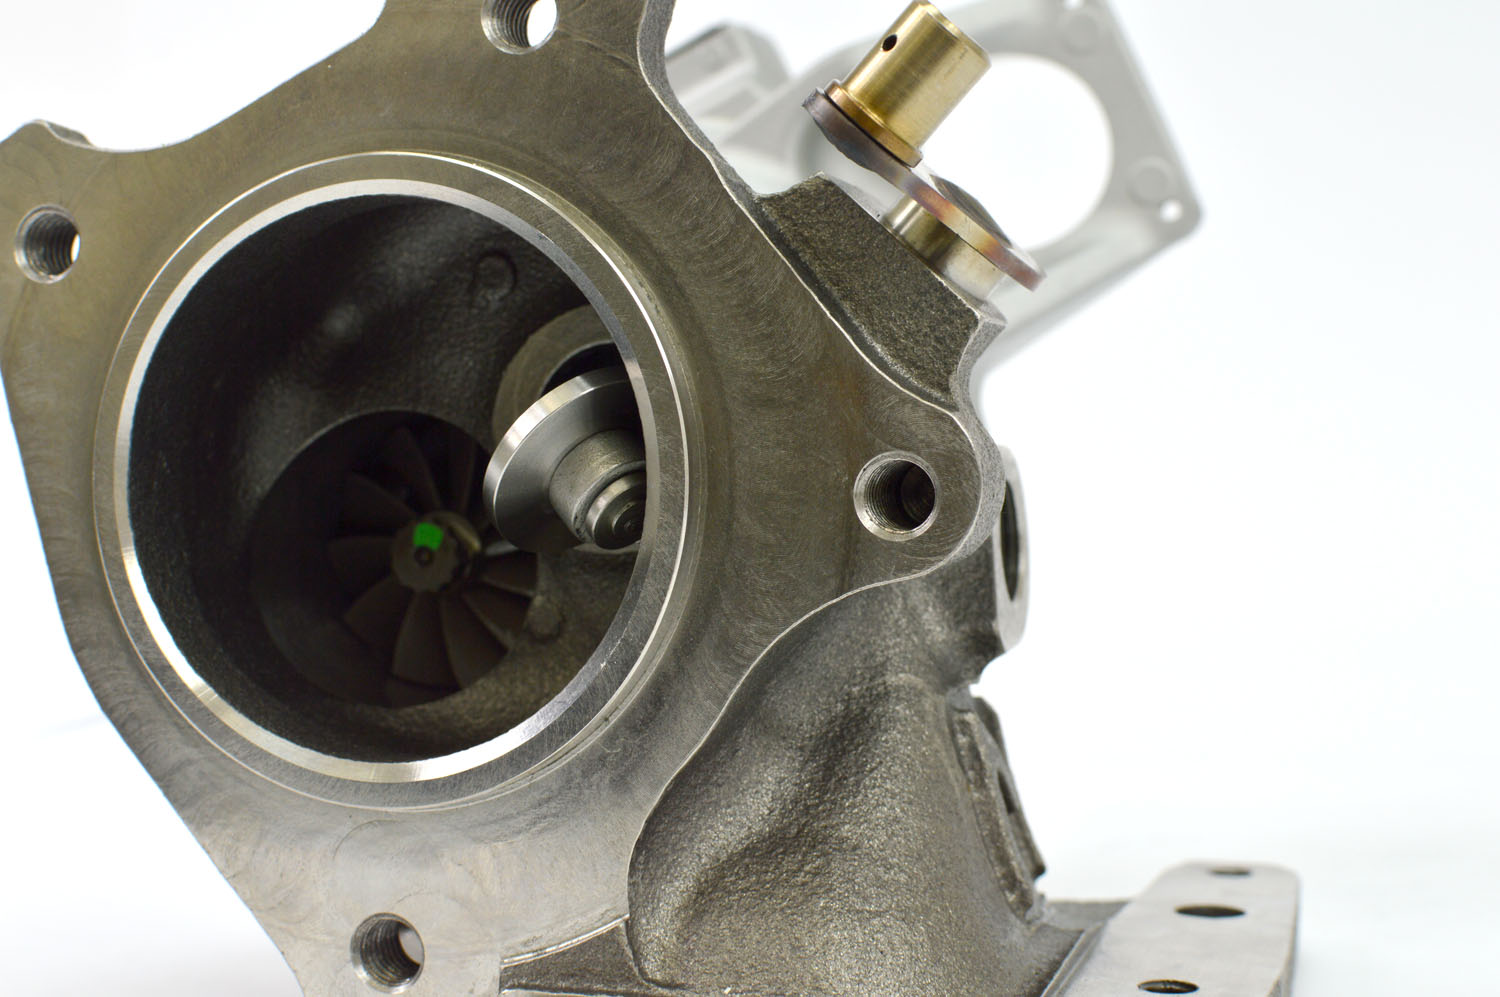 civic-drop-in-turbo-kit-turbine.JPG